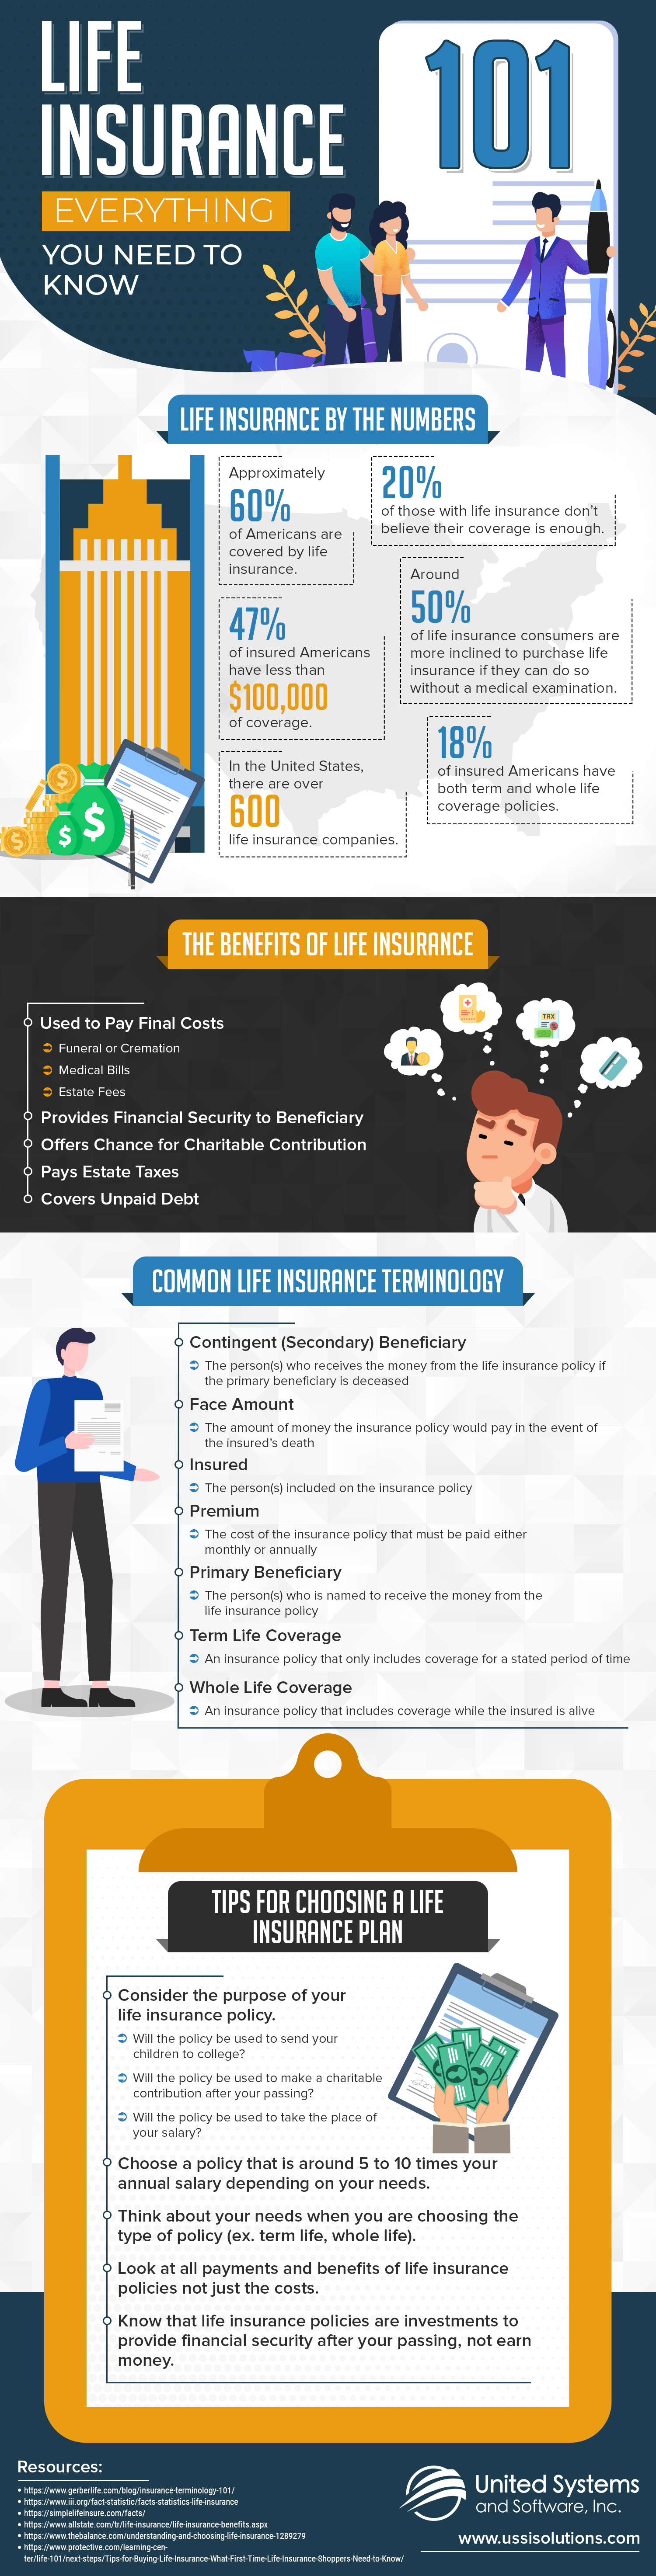 How to Choose the Best Life Insurance Plan for Your Needs - Infographic